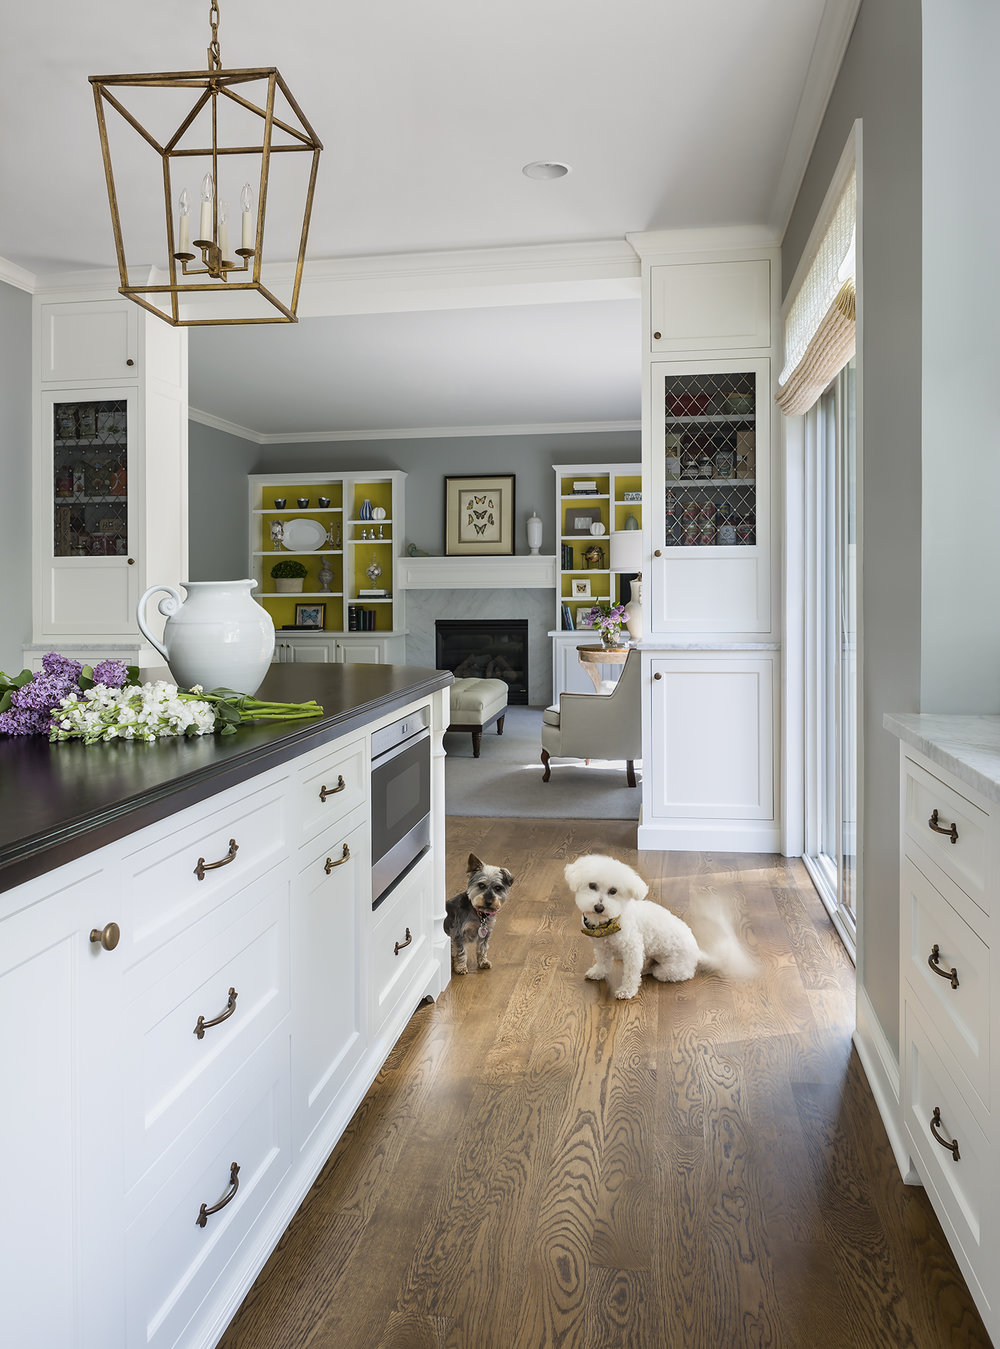 Design By Liz Shupanitz, Photos By Andrea Rugg, Cabinets By The Woodshop Of  Avon